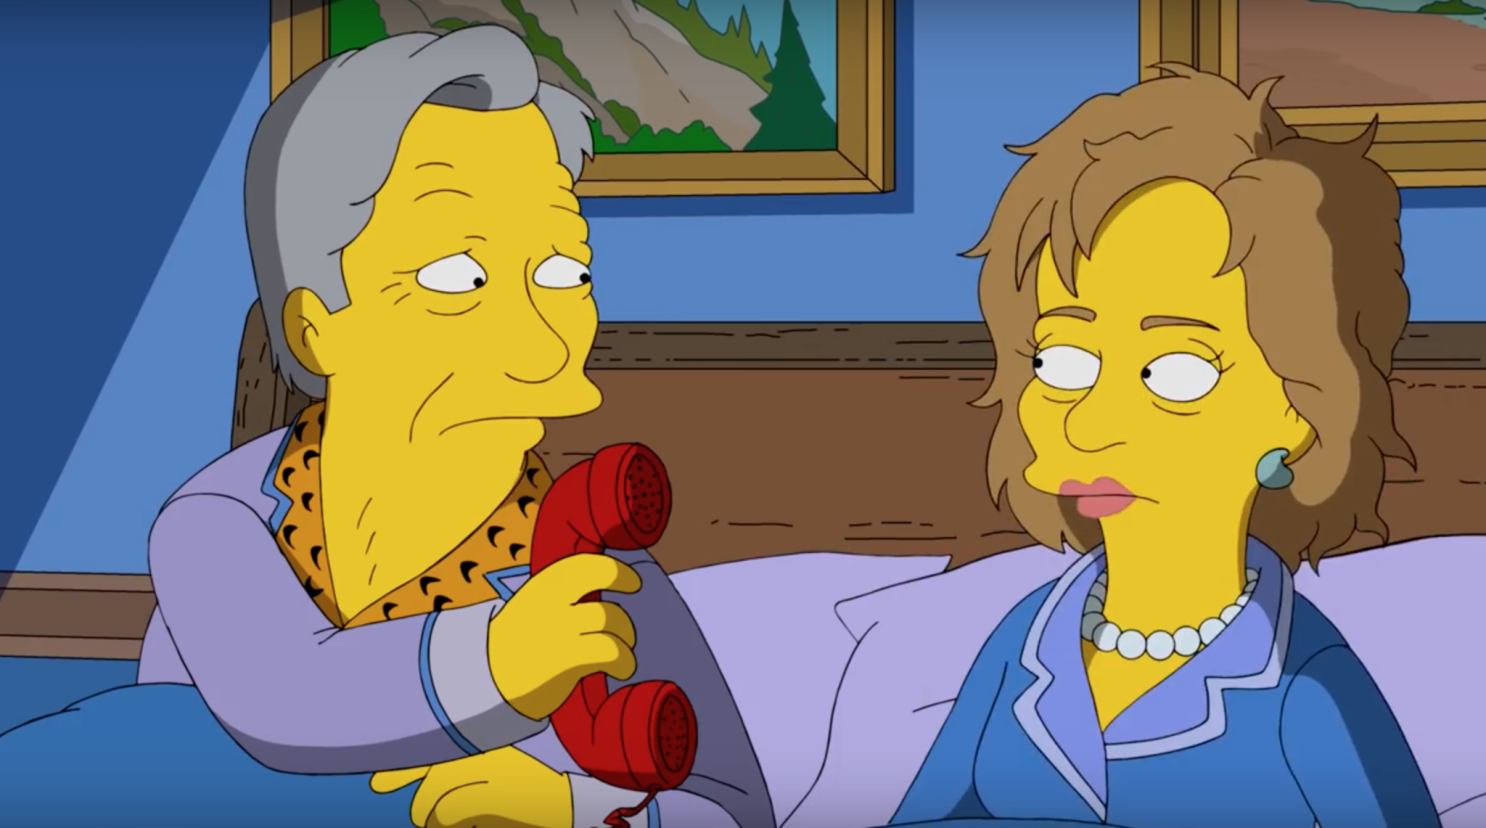 Trumps Budget Takes Aim At My Sweet Son >> The Simpsons Takes Aim At Donald Trump In New Video Los